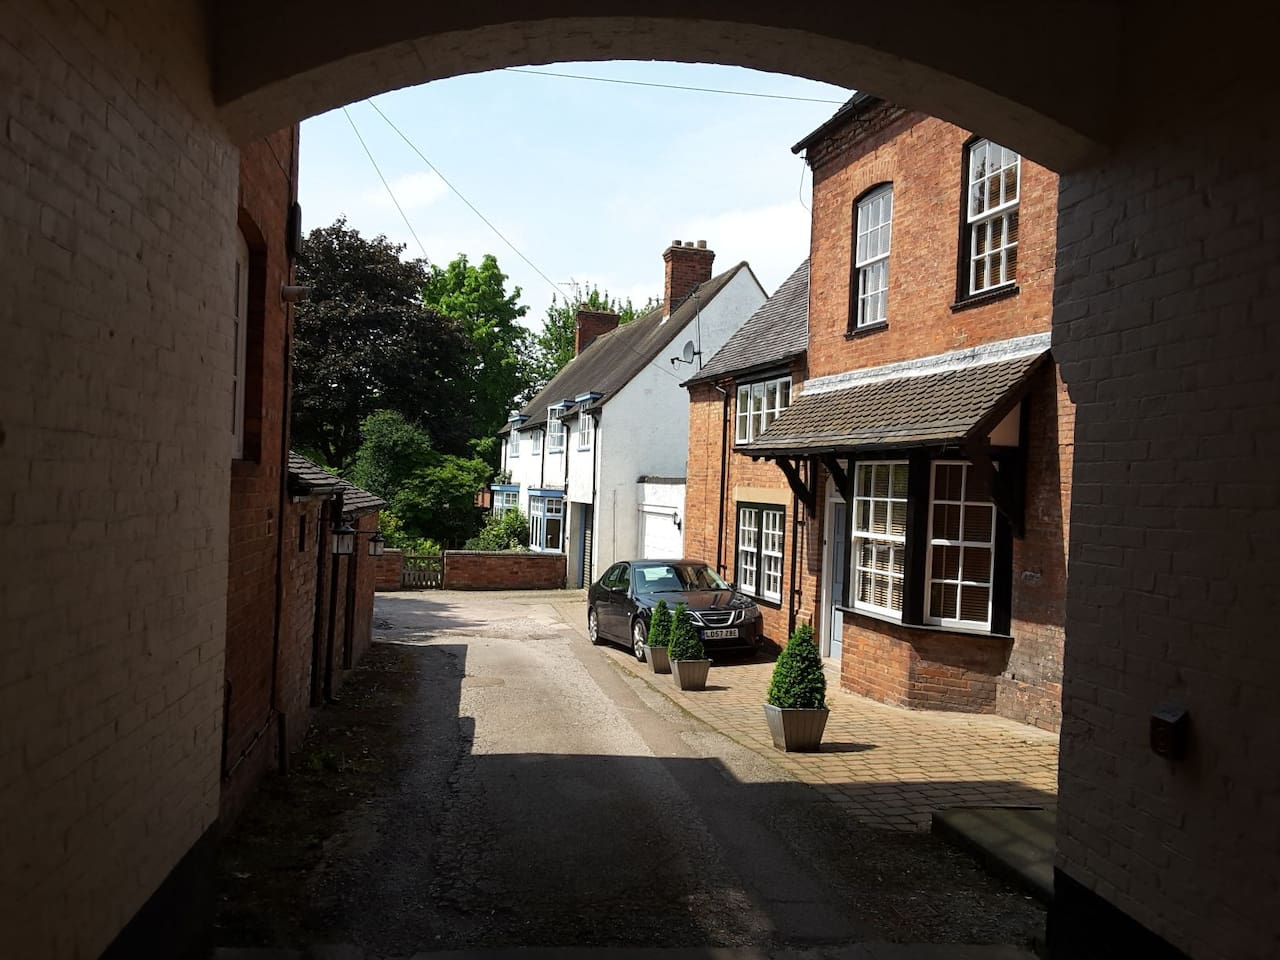 The first view of 3 Whitehall through the carriage archway into the private courtyard..